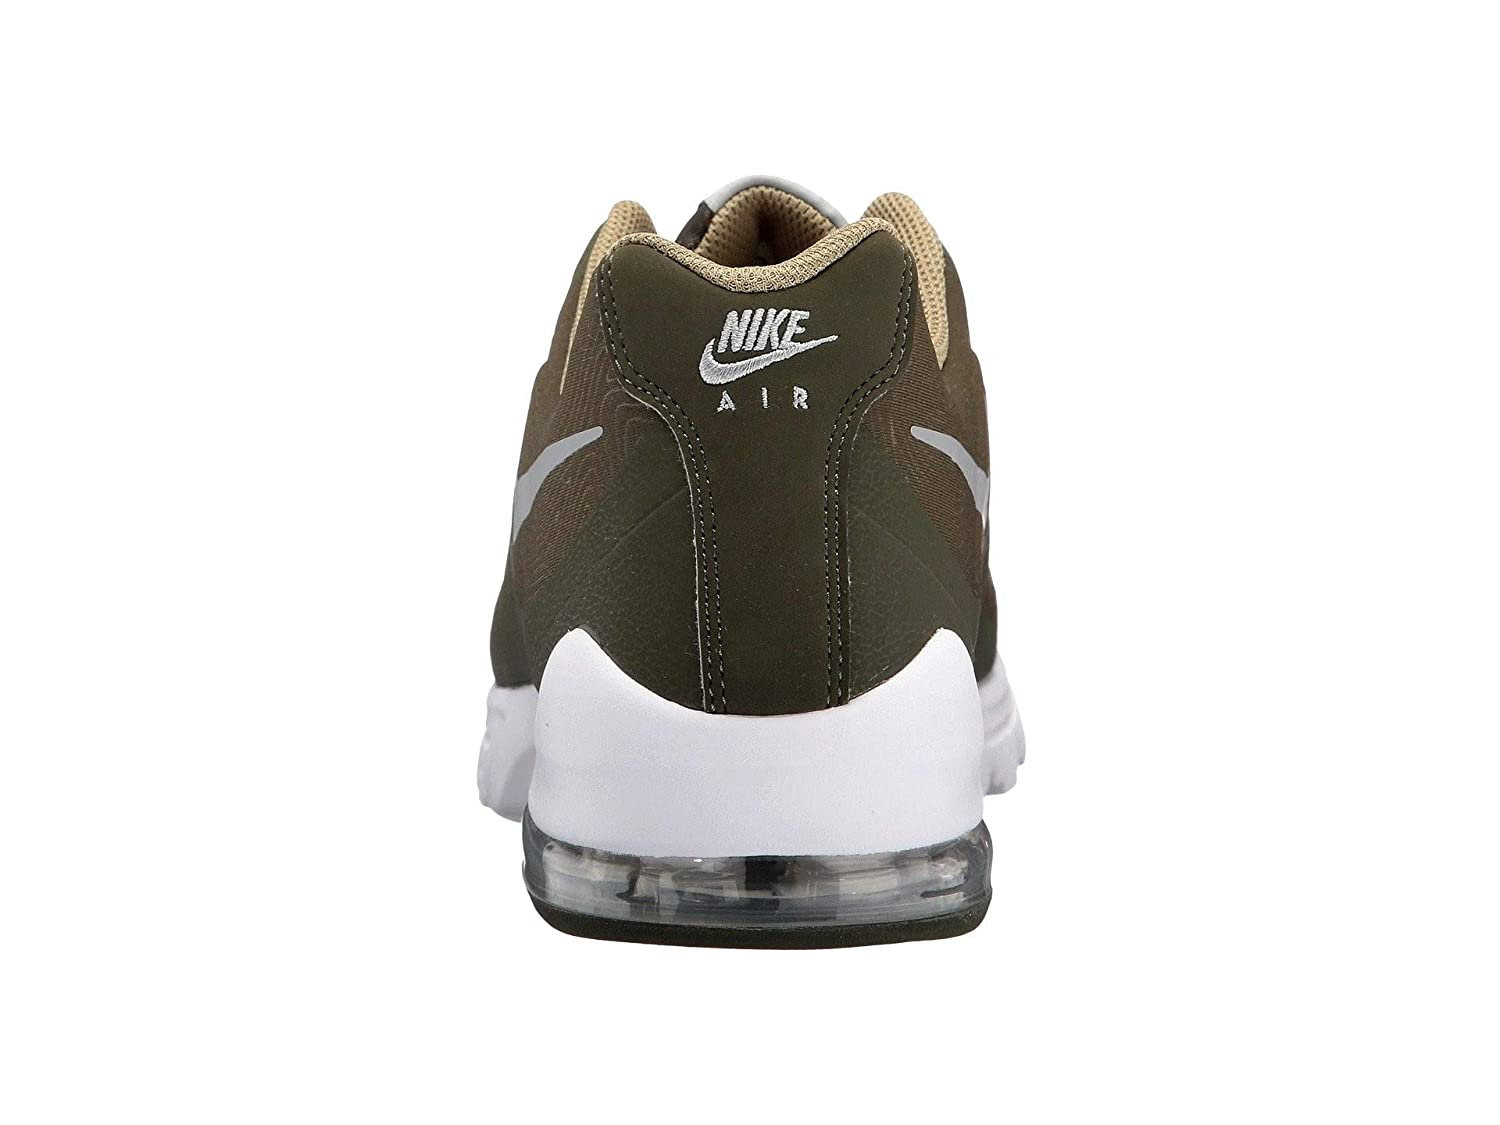 finest selection 8ea74 35977 Nike - Mode H Baskets Mode - air Max Invigor Se - Taille 49.5  Amazon.fr   Chaussures et Sacs